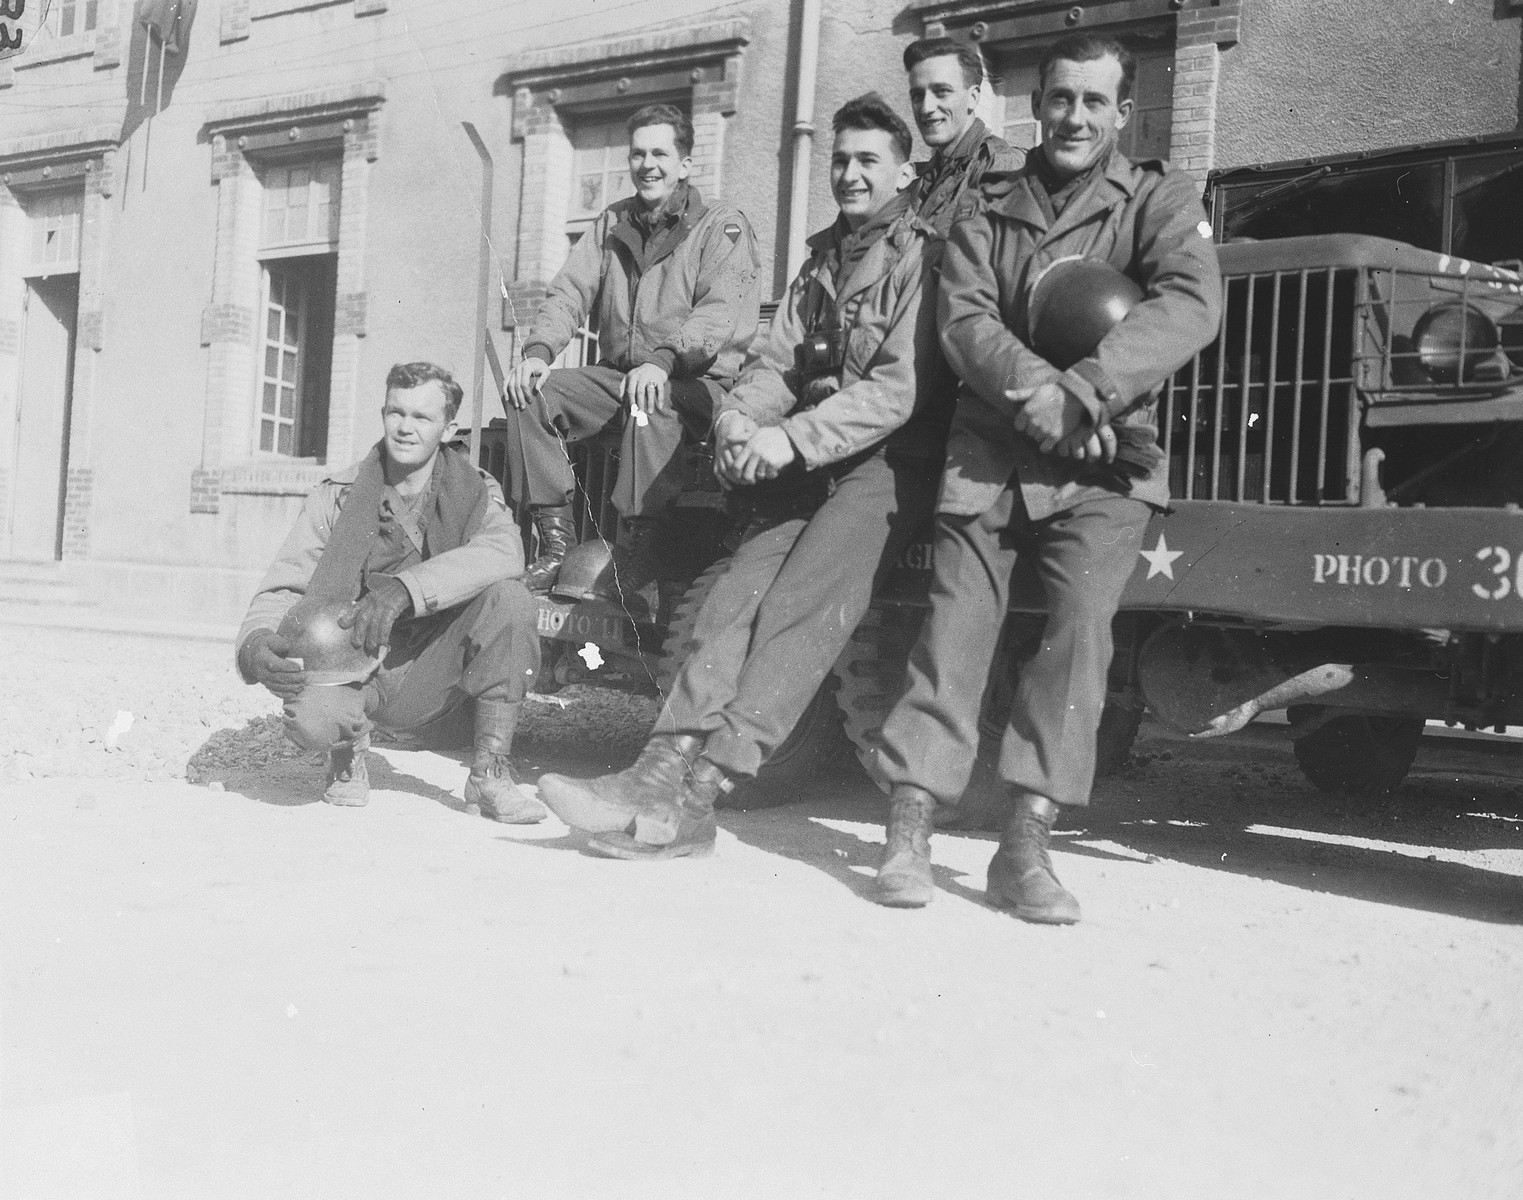 Group portrait of members of Combat Unit 123, a unit of the U.S. Army 167th Signal Photo Company.  Pictured from left to right are: Walt MacDonald, Arnold Samuelson, J Malan Heslop, John O'Brien, and Eddie Urban.